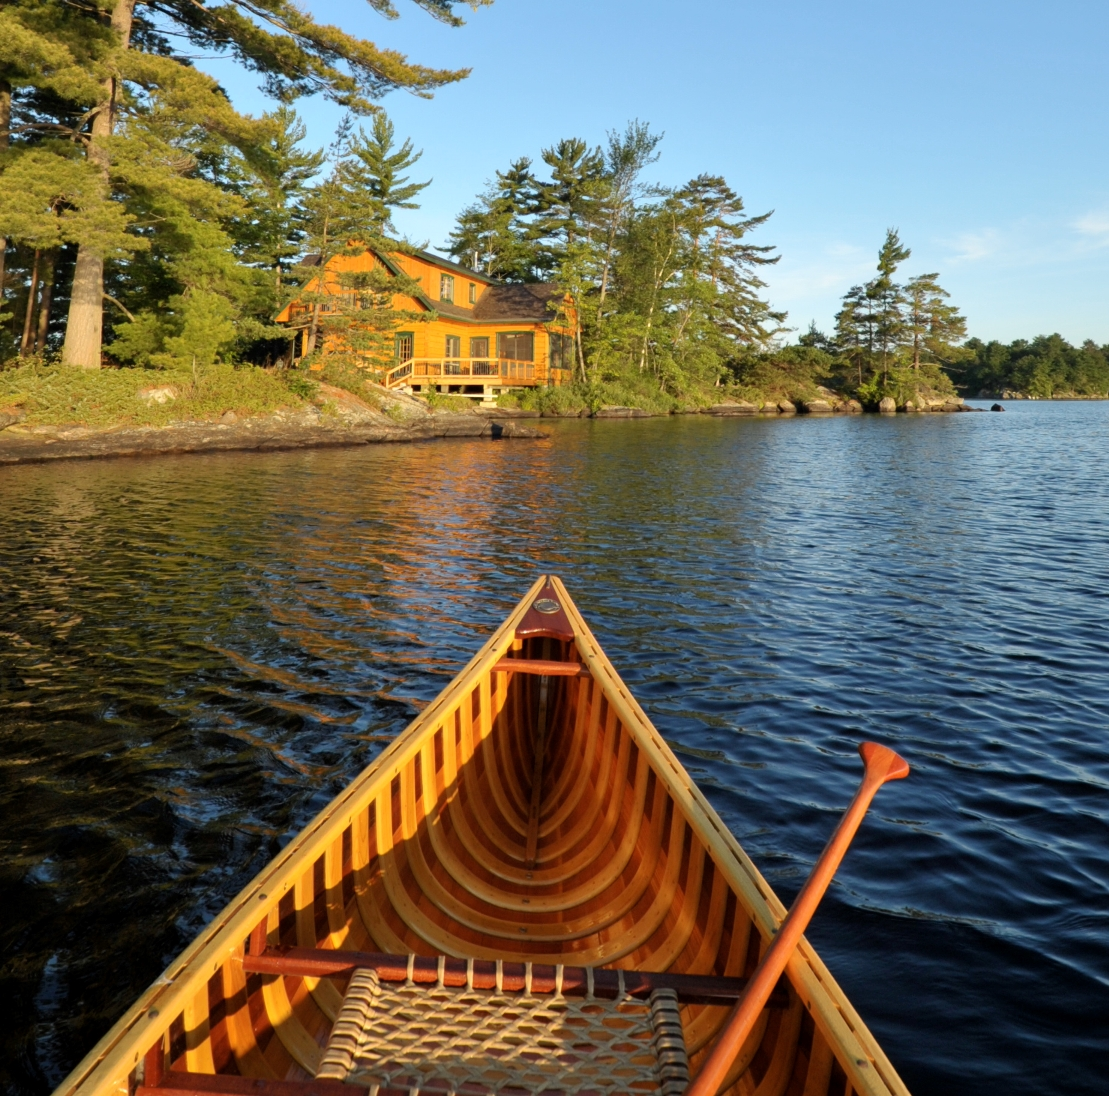 Paddling A Canoe Backto A Lakeside Retreat Is One Of The Joys Of . Full resolution  portrait, nominally Width 1109 Height 1096 pixels, portrait with #1B71B0.